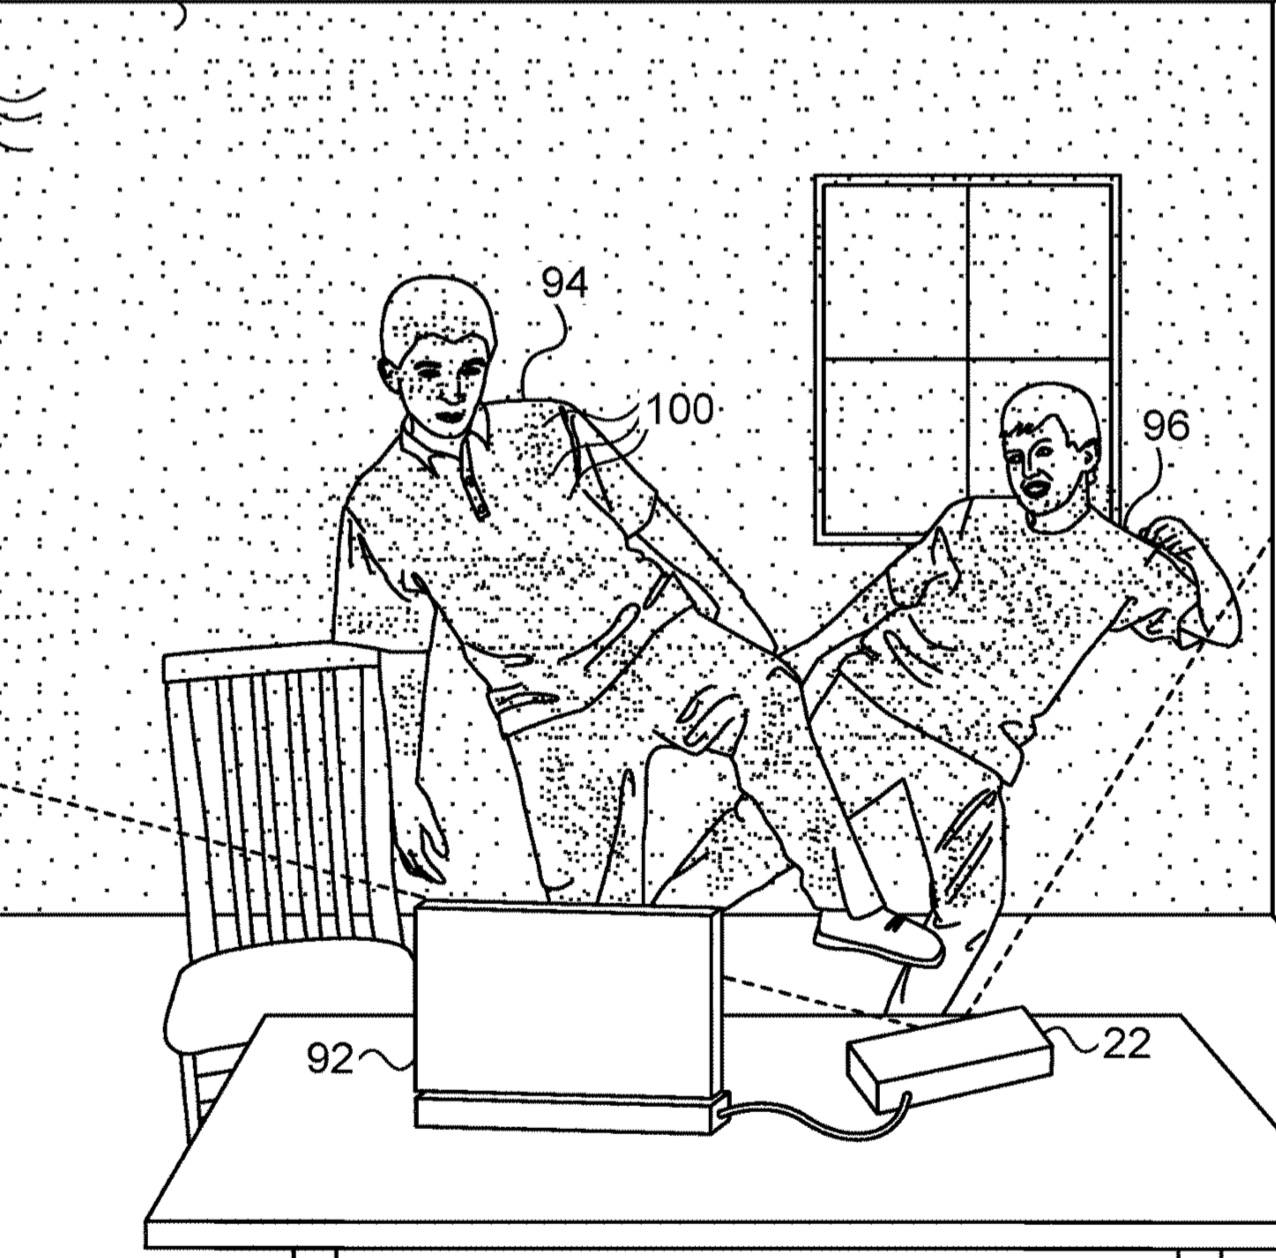 Gesture interface patent.jpg